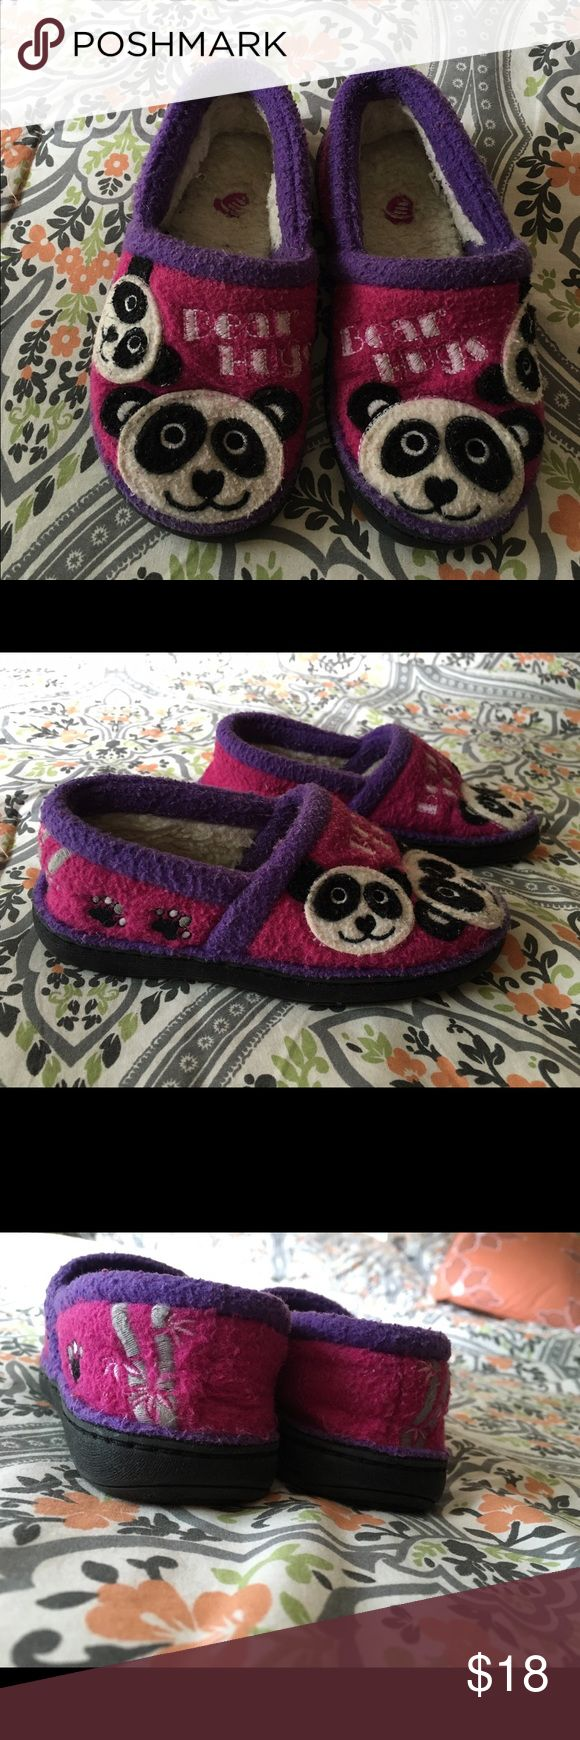 Panda slippers Acorn girls panda slippers, gently used, fits sizes 8-9. **please review all photos, comment if you have any questions** Acorn Shoes Slippers